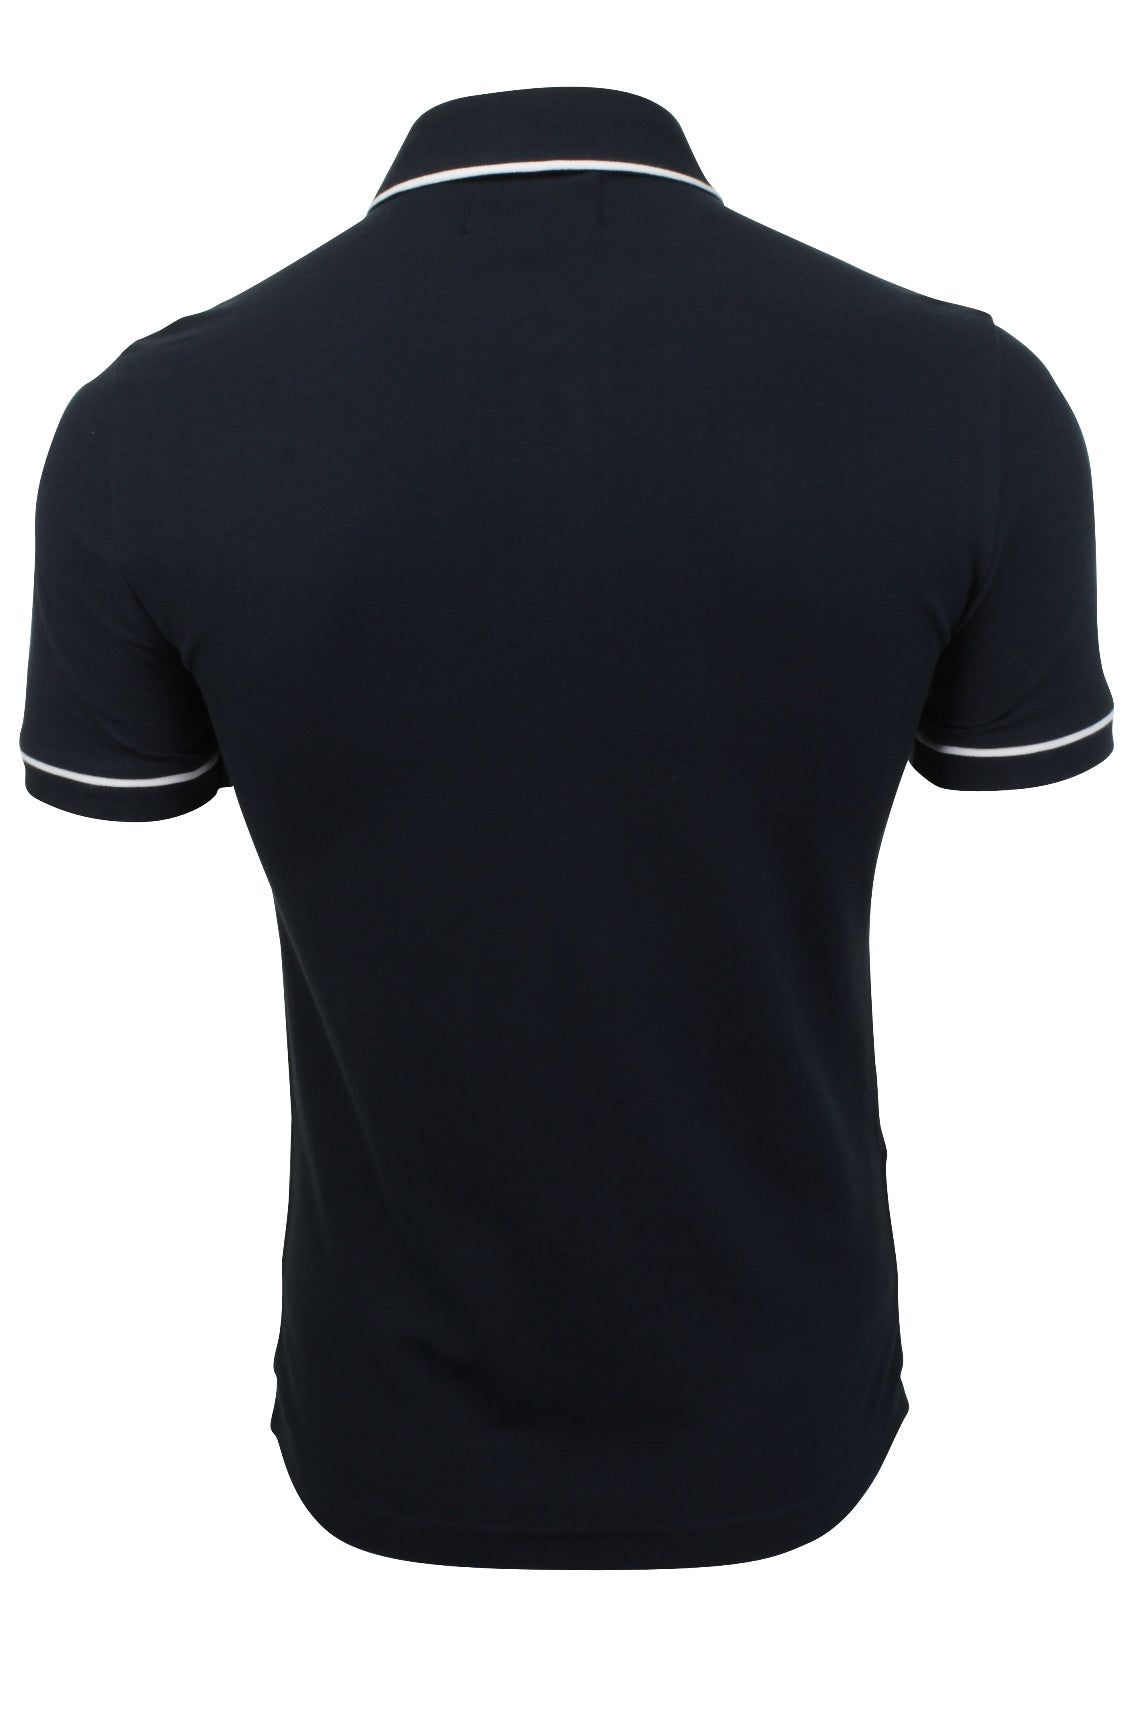 Mens Polo T-Shirt by Original Penguin 'Earl' Short Sleeved-3